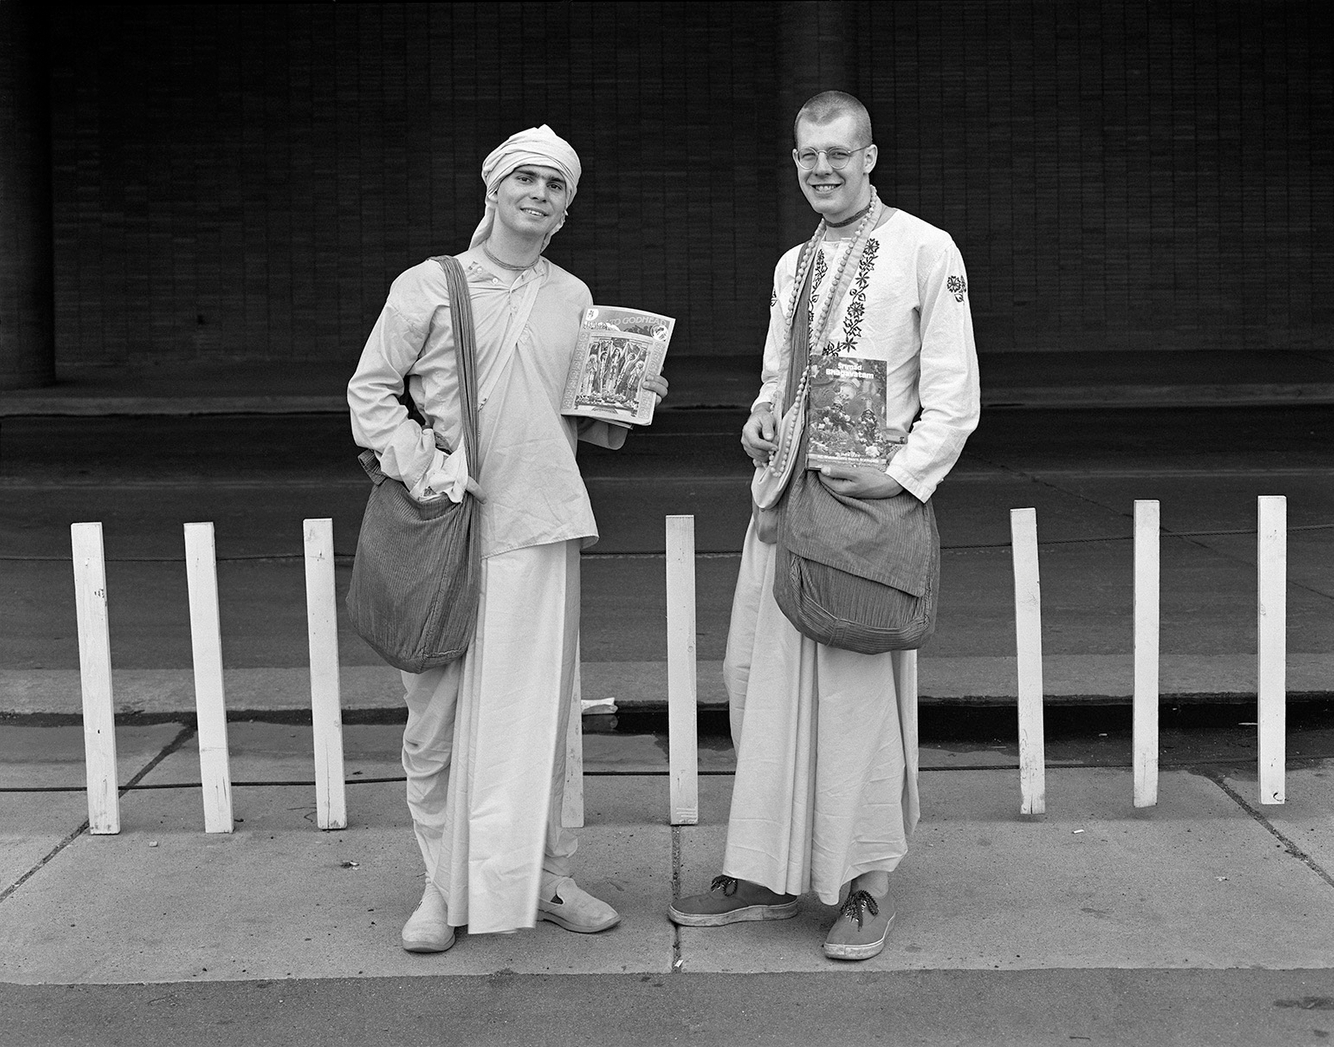 Two Hari Krishnas, Detroit, 28 May 1973